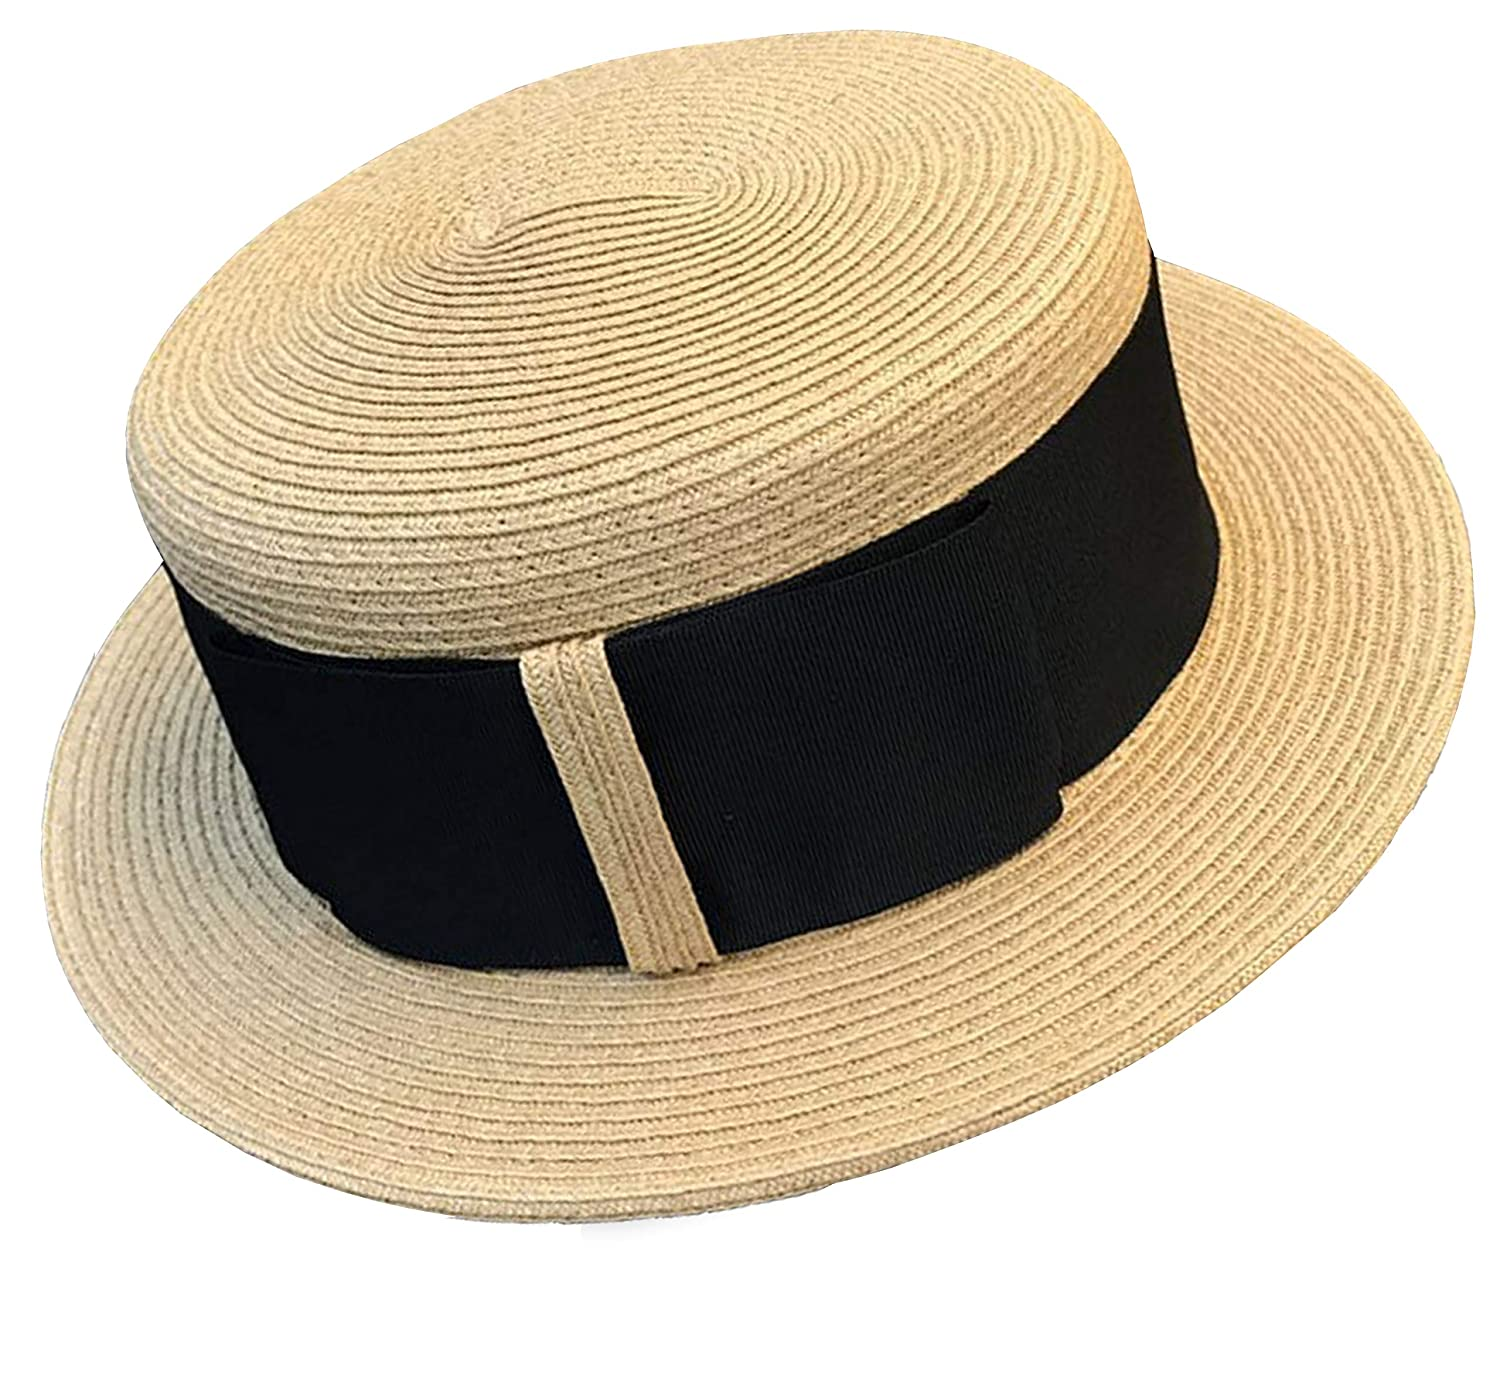 Tea Party Hats – Victorian to 1950s Melniko City Womens Straw Boater Summer Hat Flat Top Retro 1920 $23.38 AT vintagedancer.com